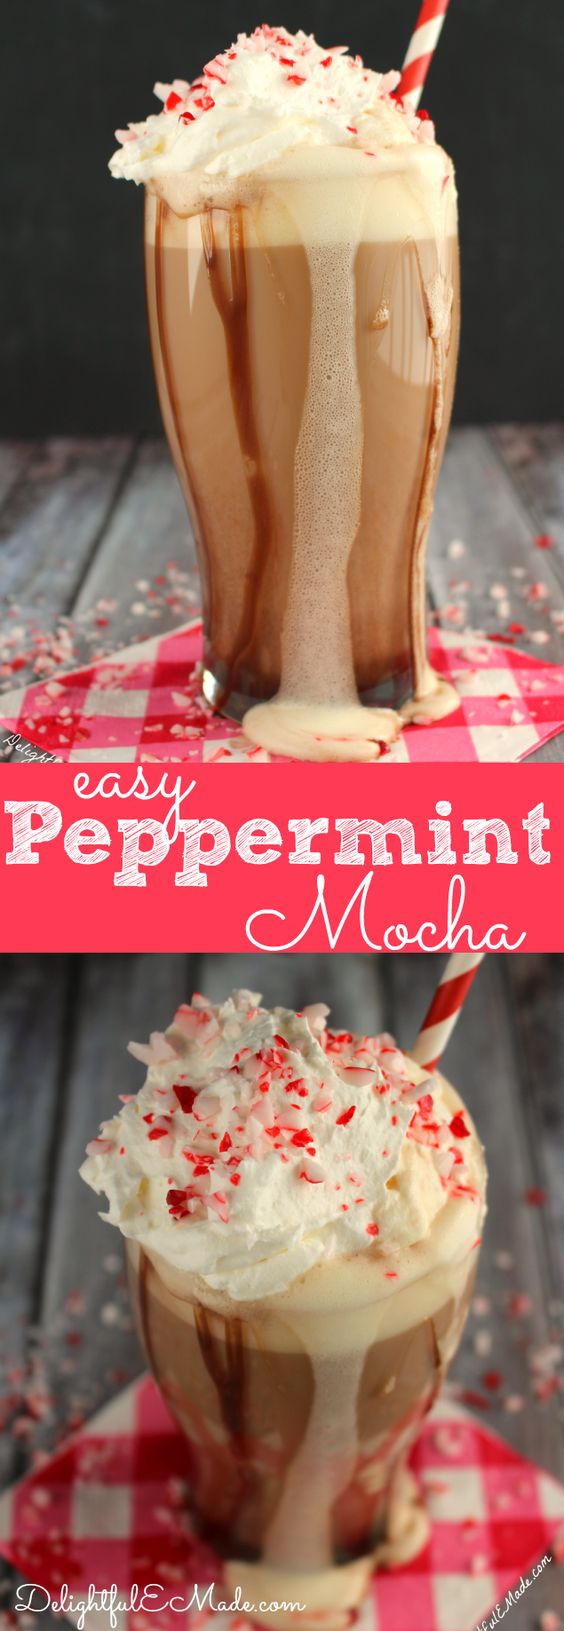 With just a few ingredients, you can easily make your favorite Peppermint Mocha coffee drink right at home! Perfect for the holidays and enjoying with your Christmas cookies!